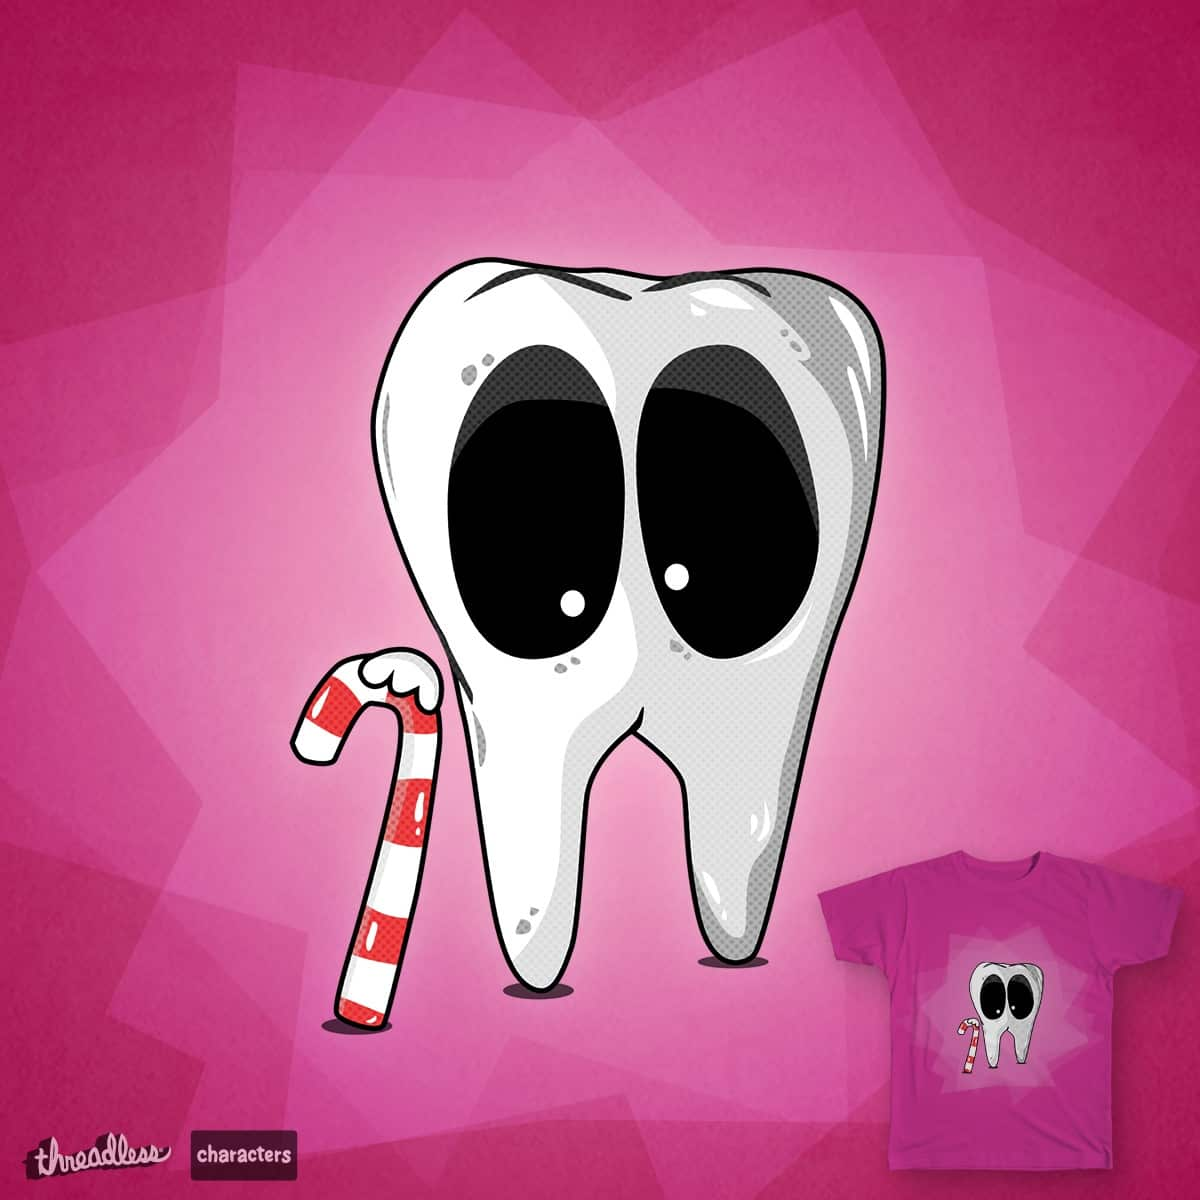 Wisdom tooth by brudy on Threadless